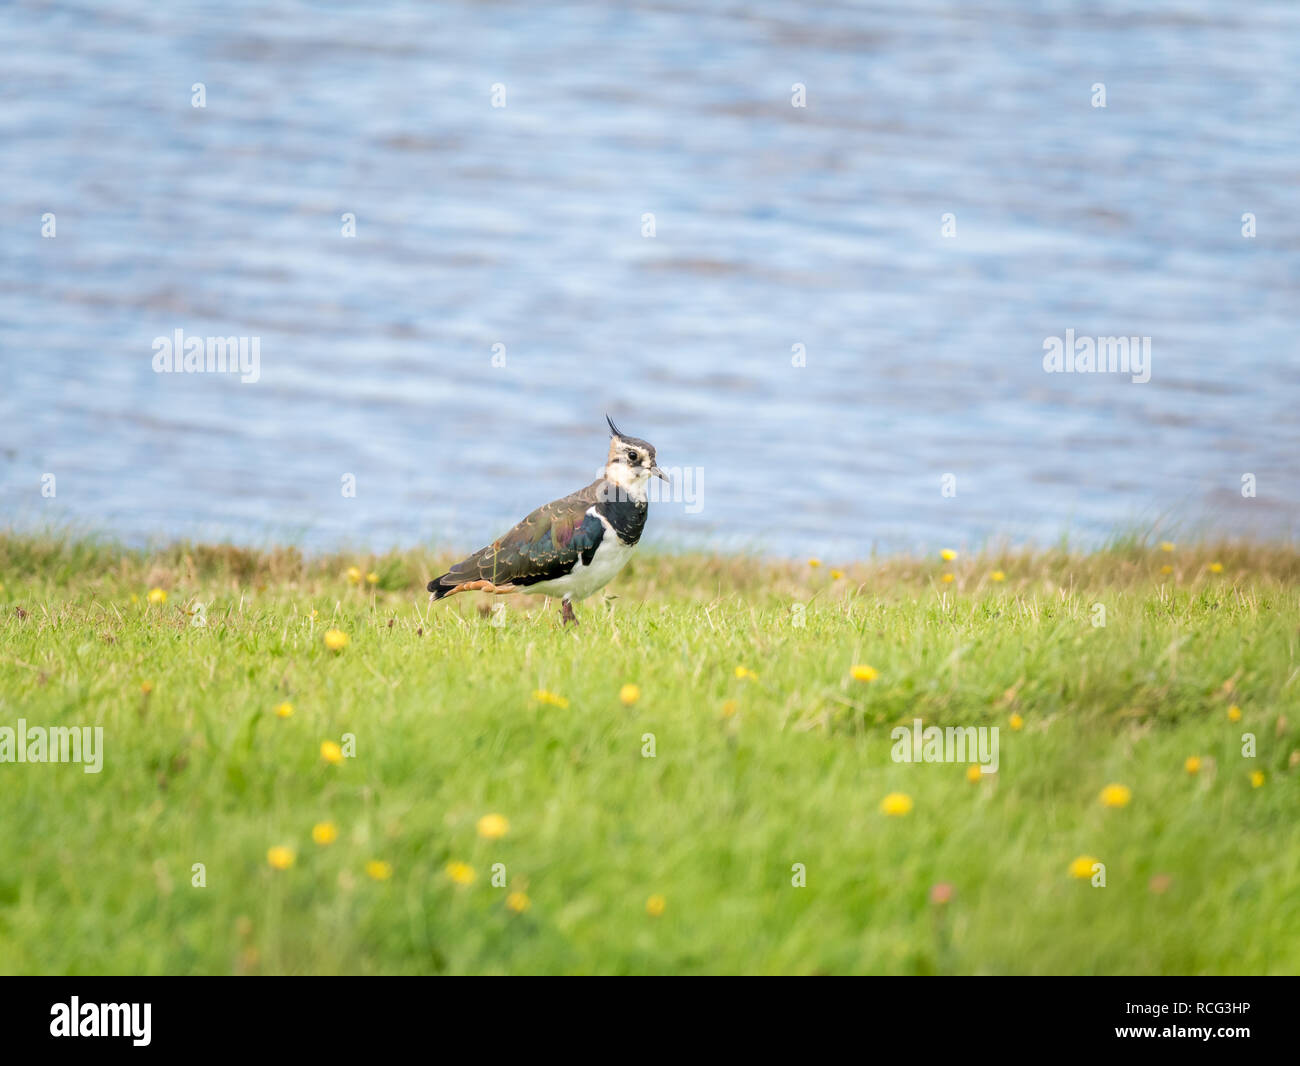 Portrait of northern lapwing, Vanellus vanellus, in grass near water, Netherlands - low depth of field, selective focus Stock Photo